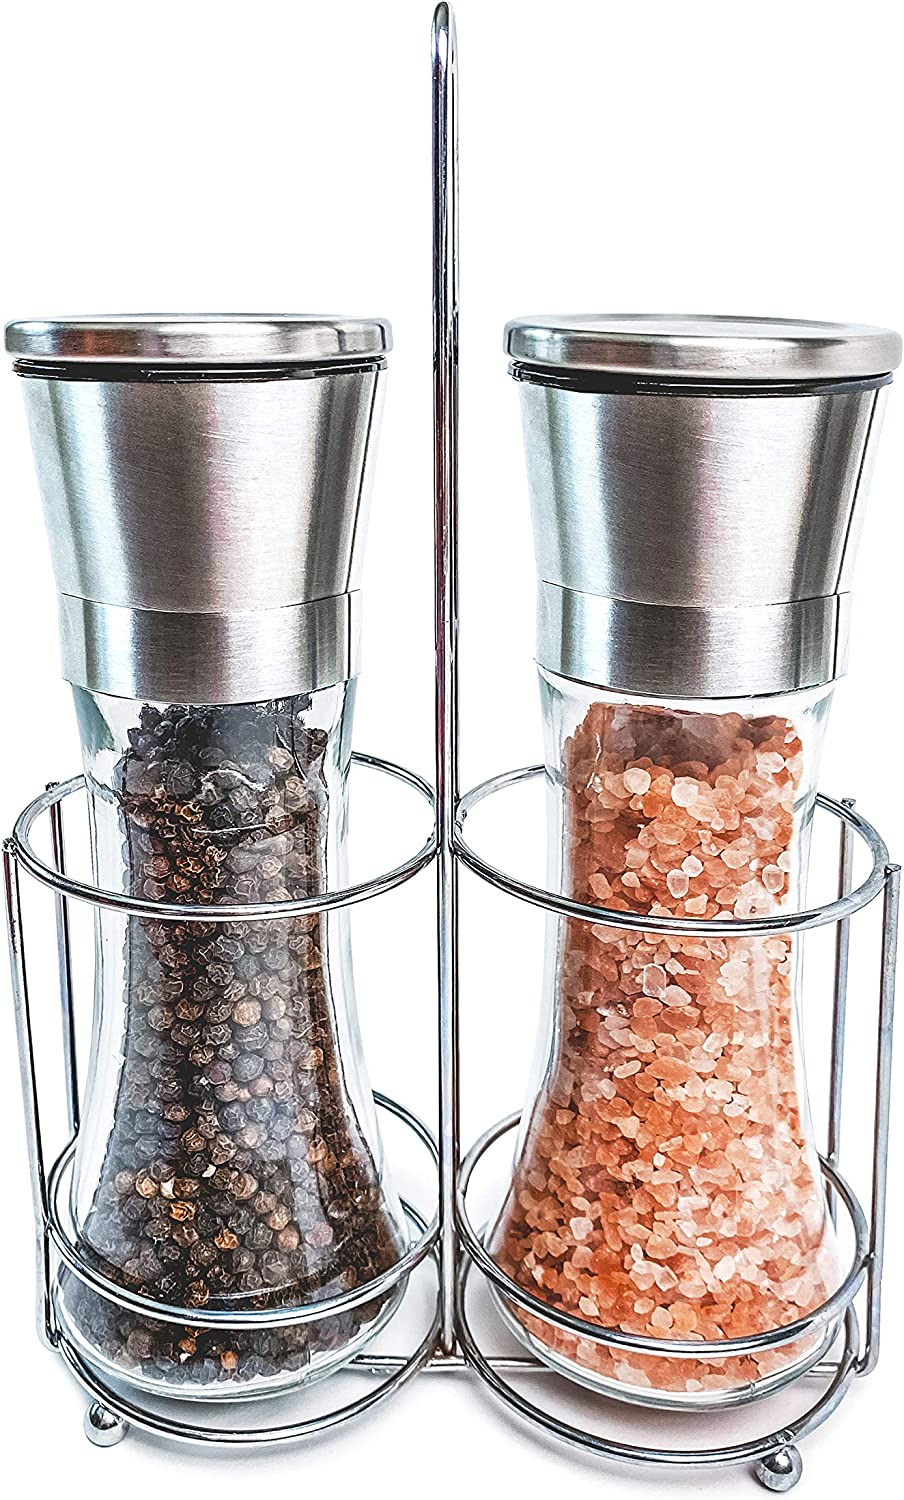 Salt and Pepper Grinder Set with Clear Mill, Stainless Steel Manual Top, and Adjustable Ceramic Grinder for Spice Coarseness, Refillable with Sea Salt or Peppercorn